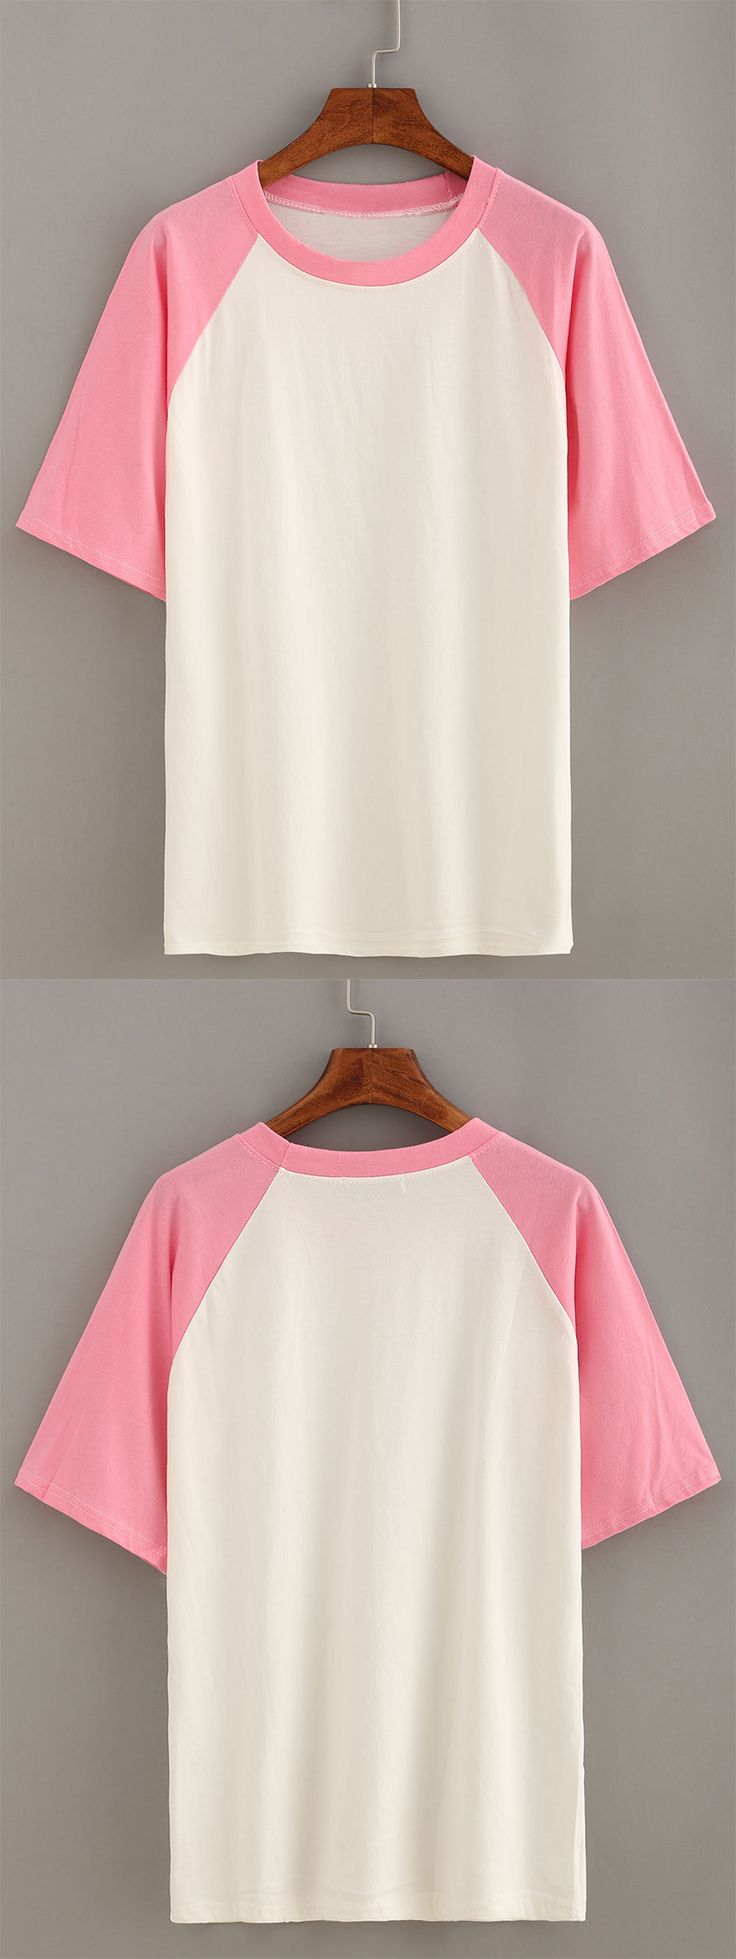 Summer color-block tops-Pink Short Sleeve Raglan T-shirt. Love raglan tops simple like this. US$7.99 now.